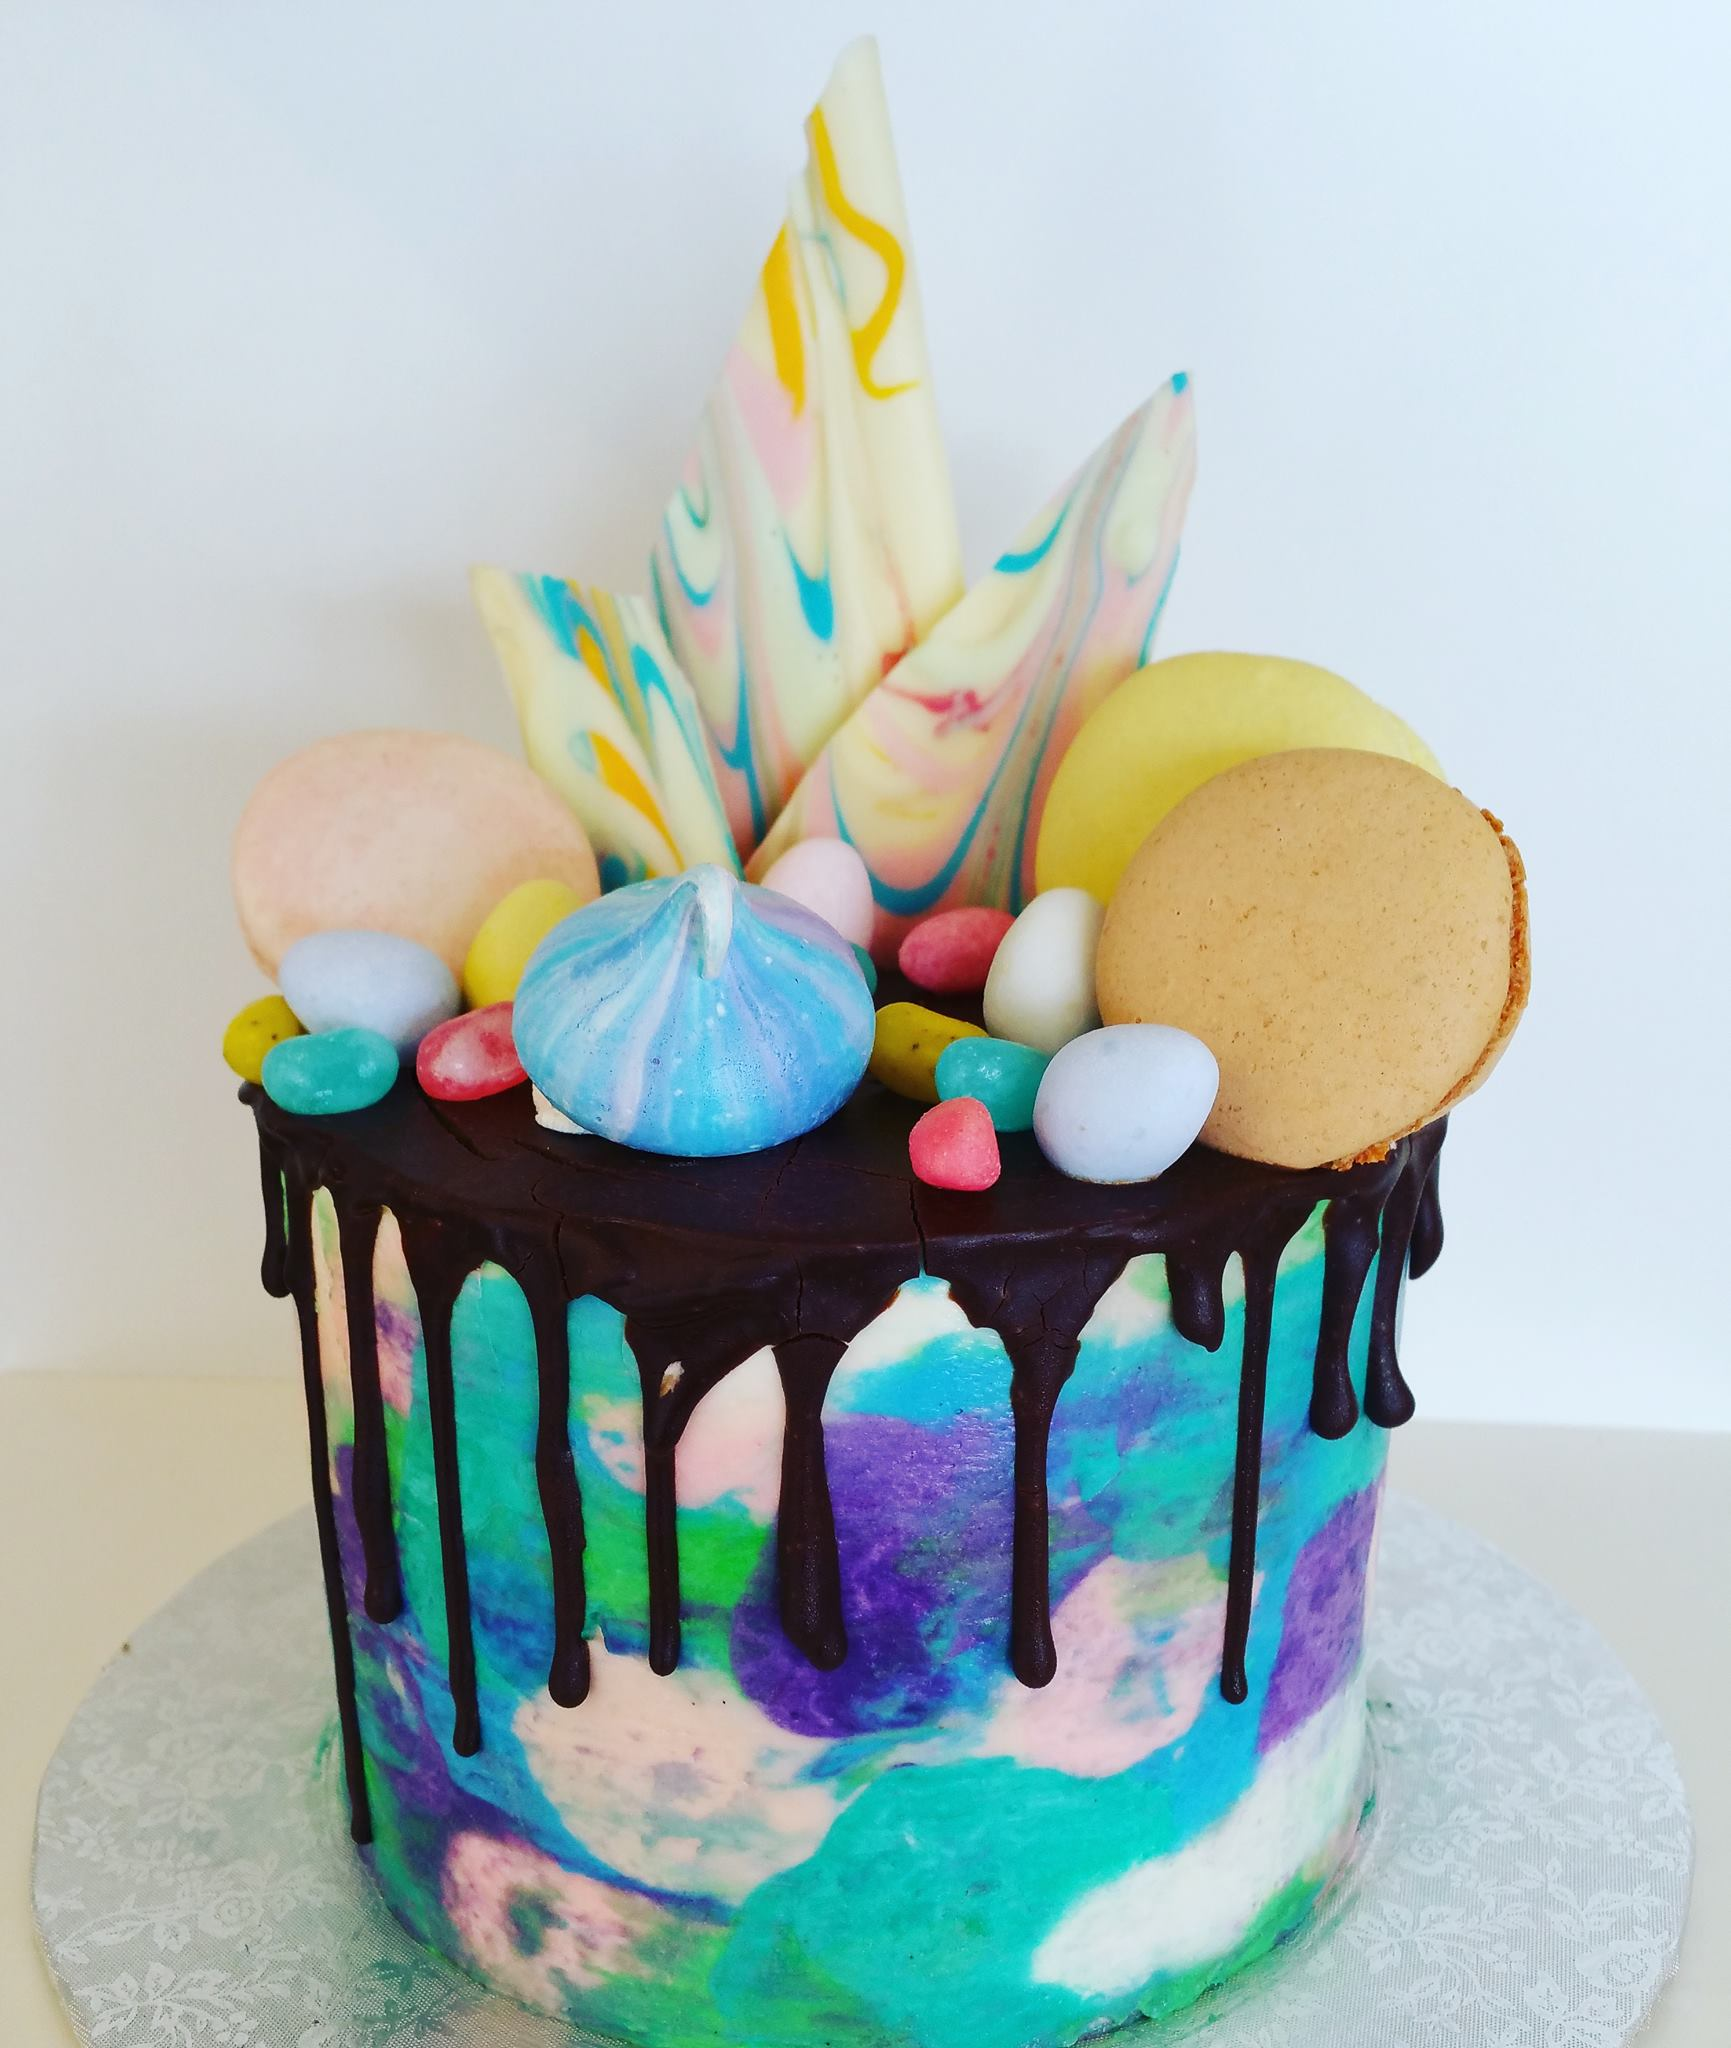 Order Your Easter Cakes And Cupcakes